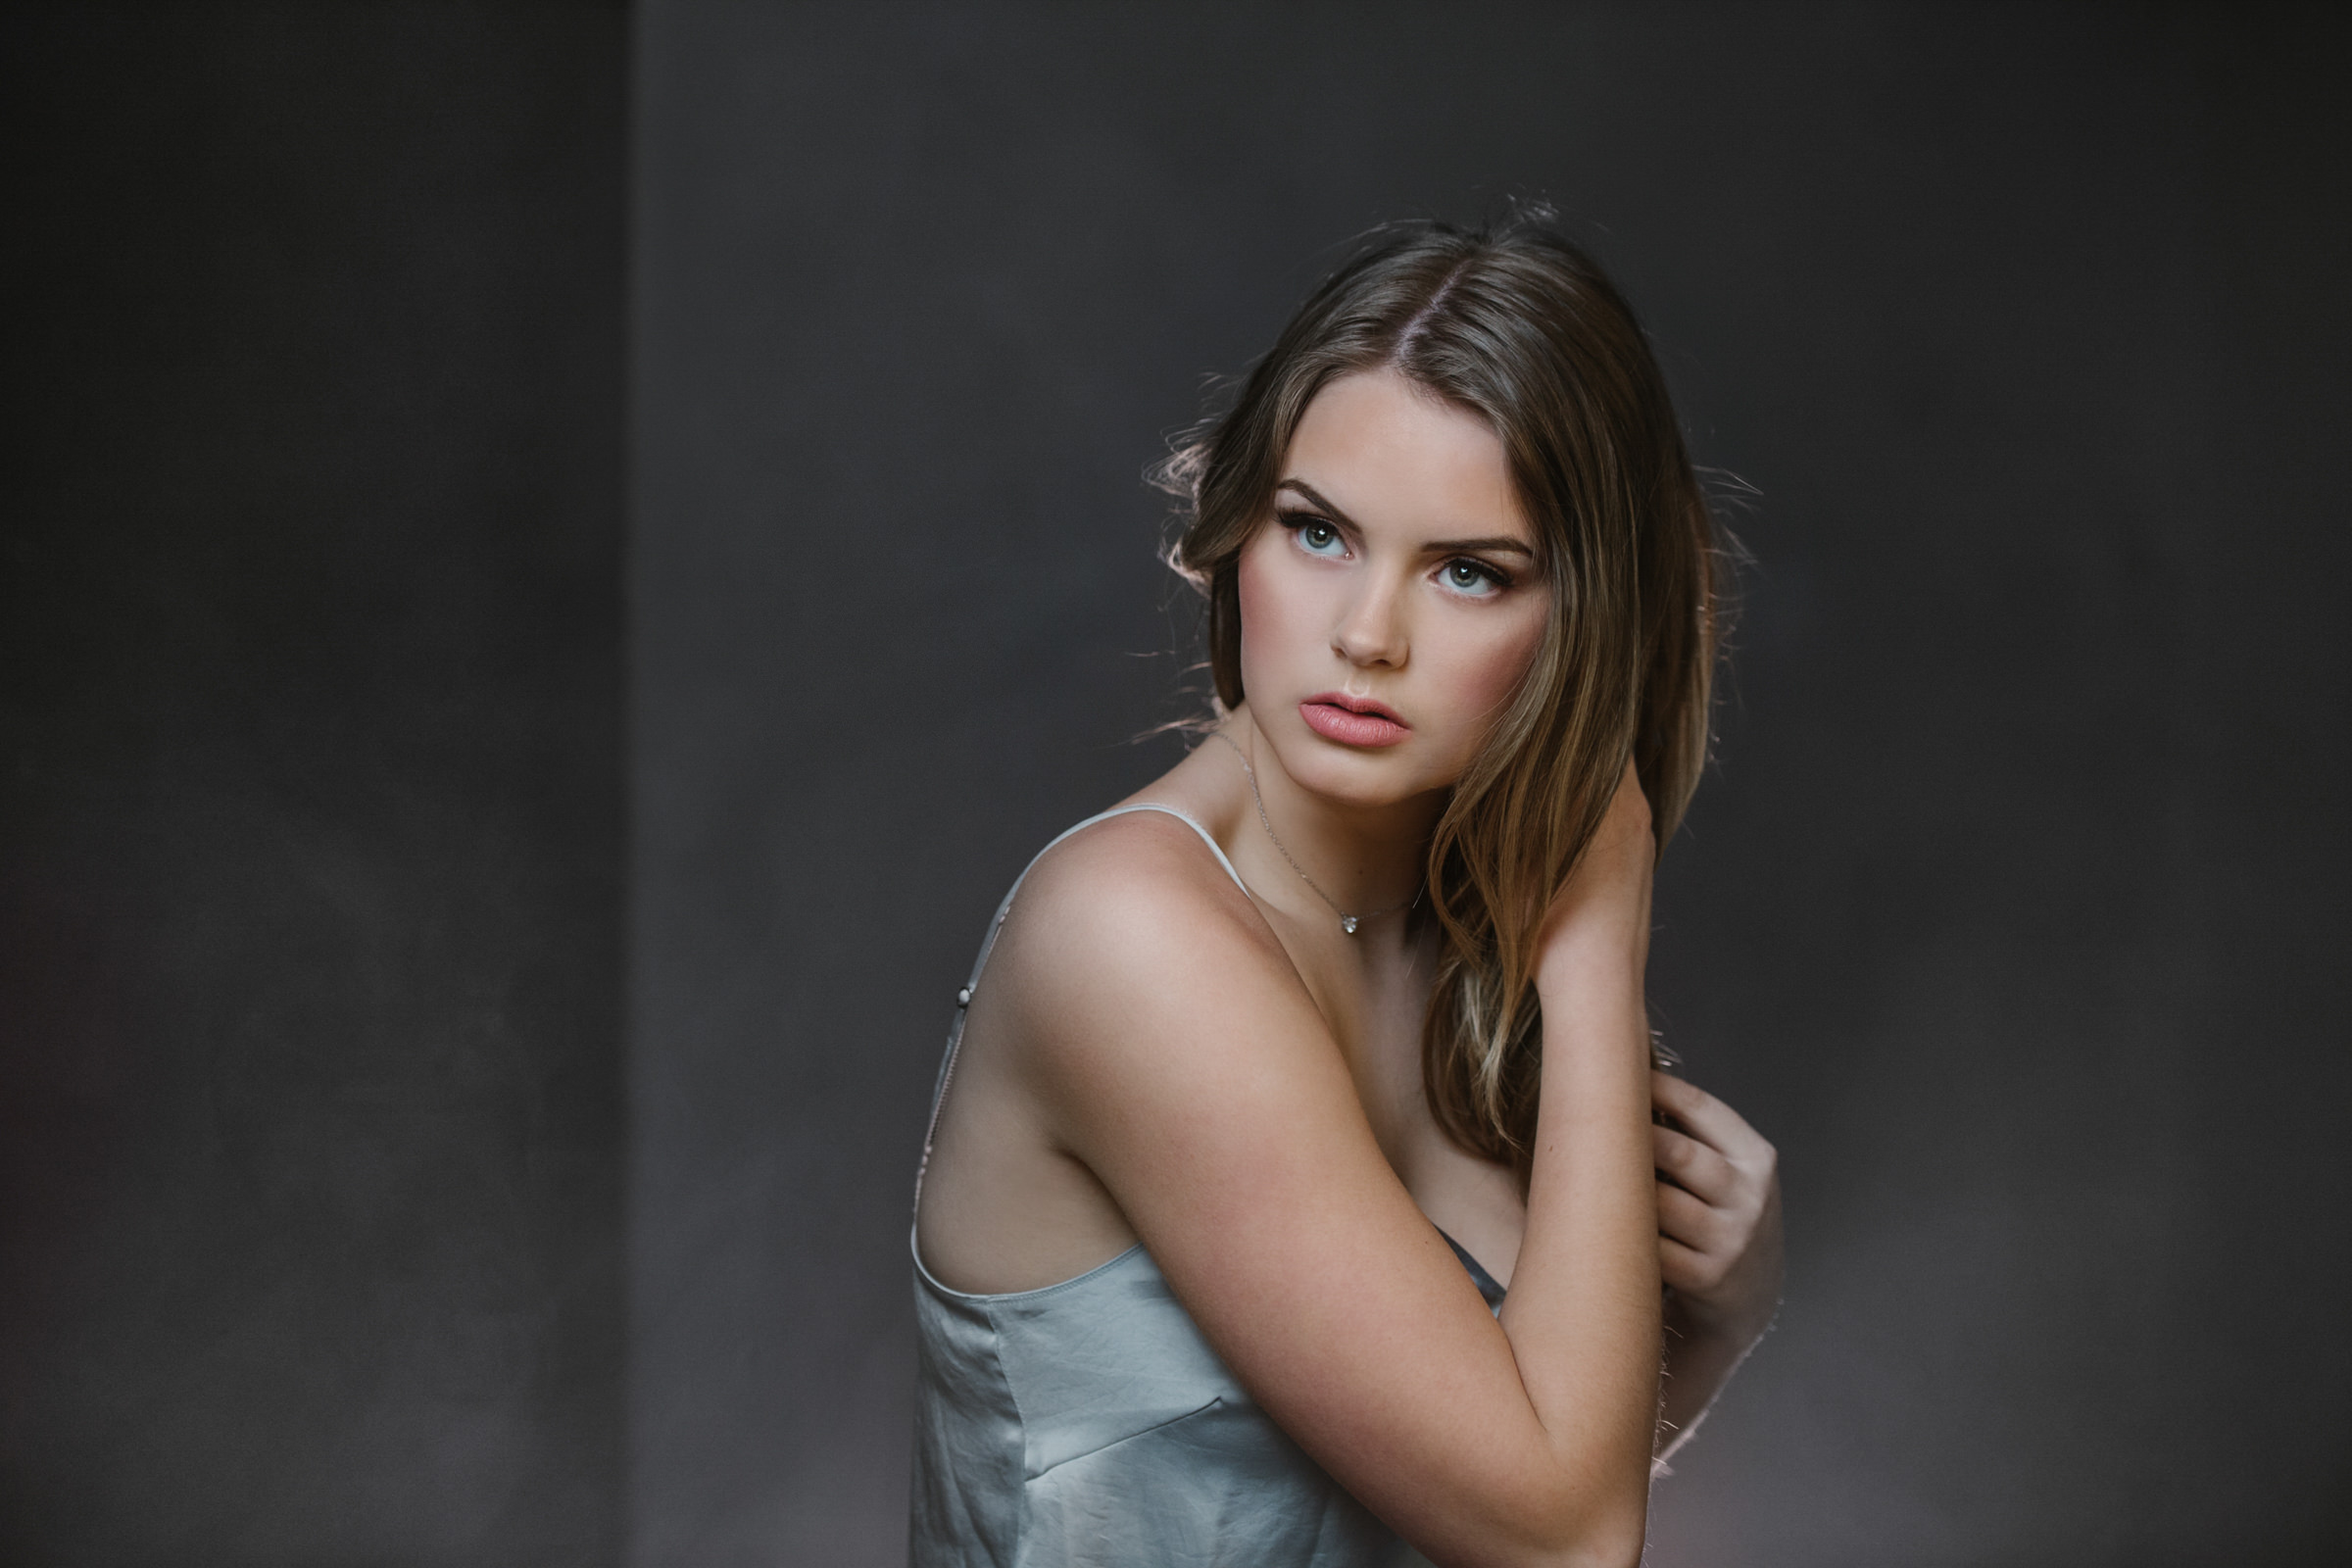 Creative portraits for todays moderm woman Kamloops model photographer studio shoot